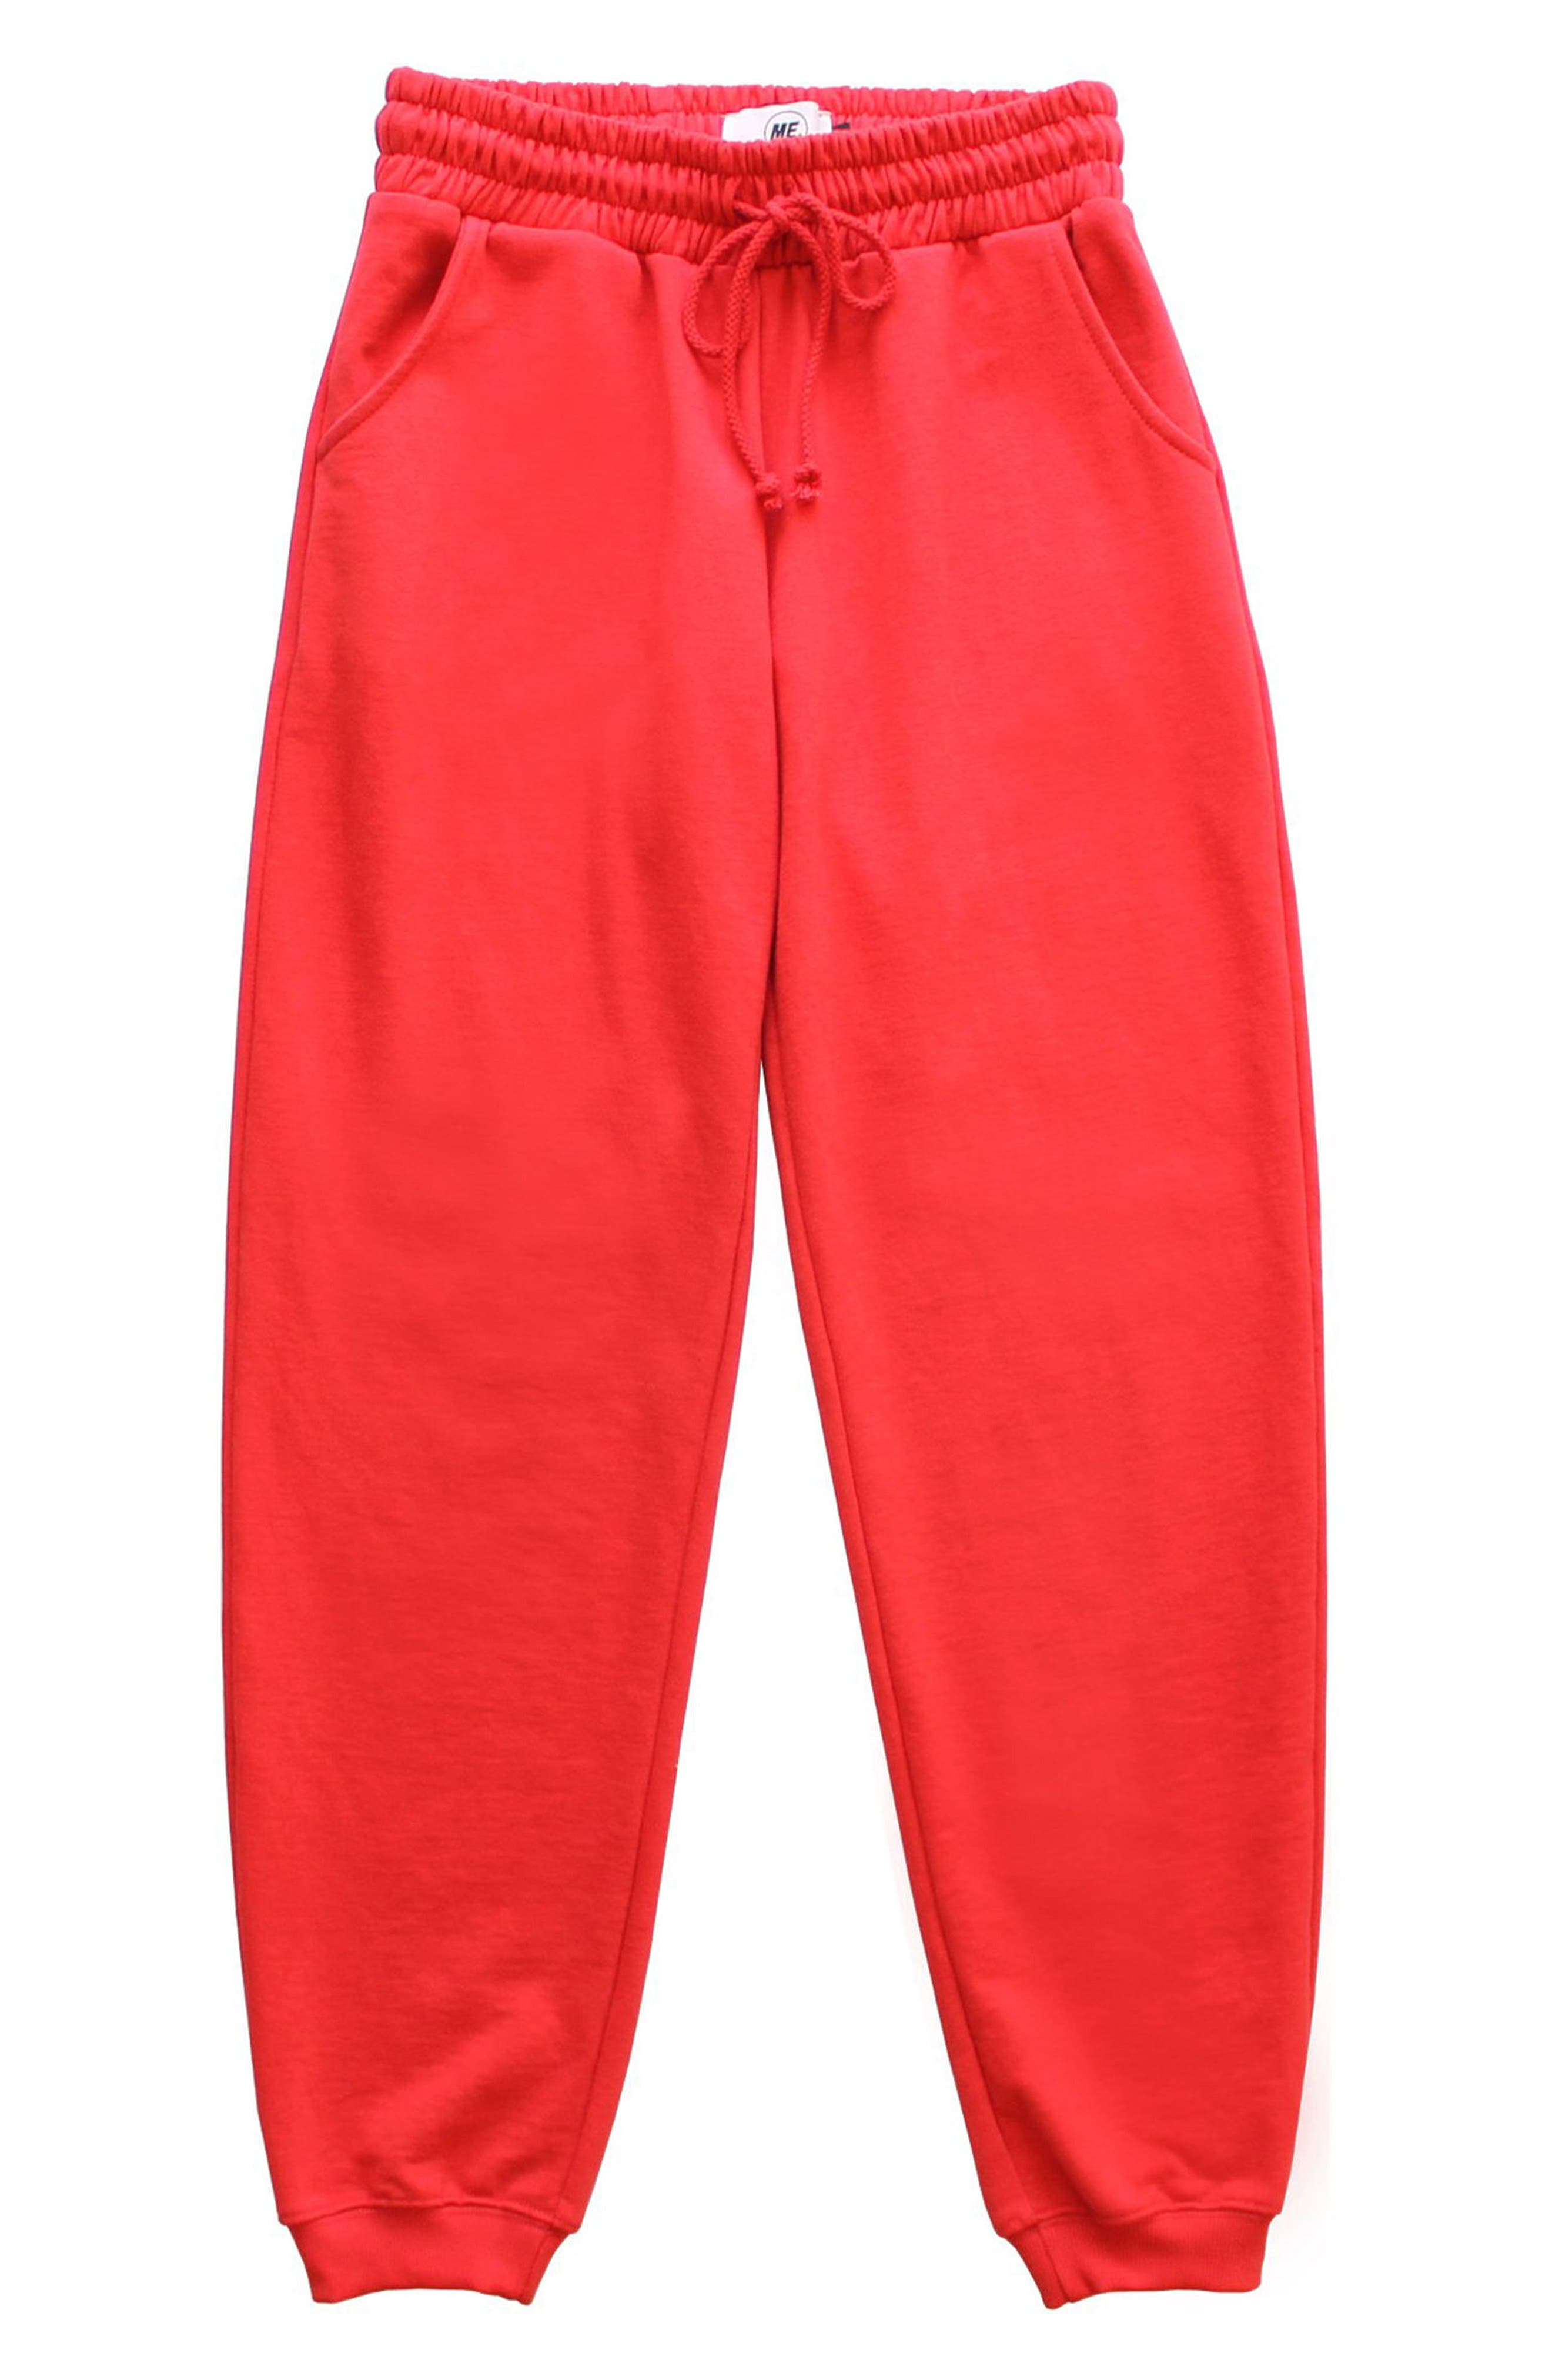 ME. Rose Sweatpants,                         Main,                         color, CHERRY RED